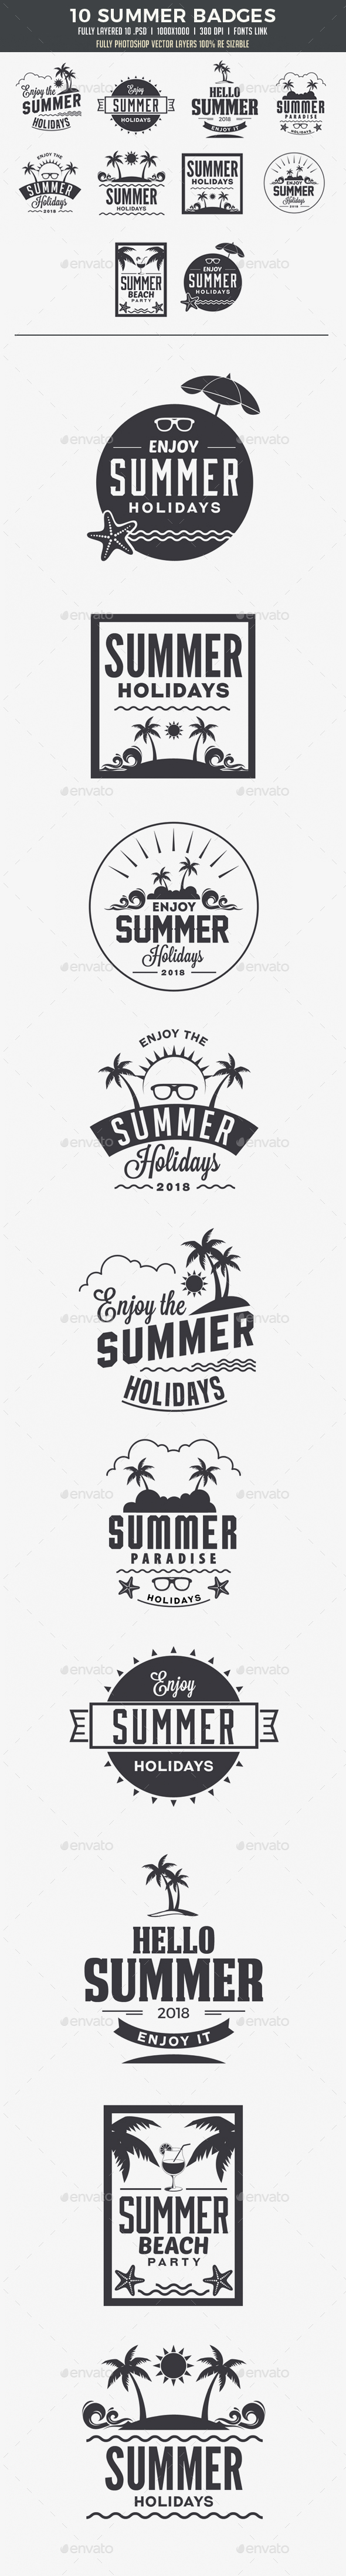 10 Summer Badges - Badges & Stickers Web Elements